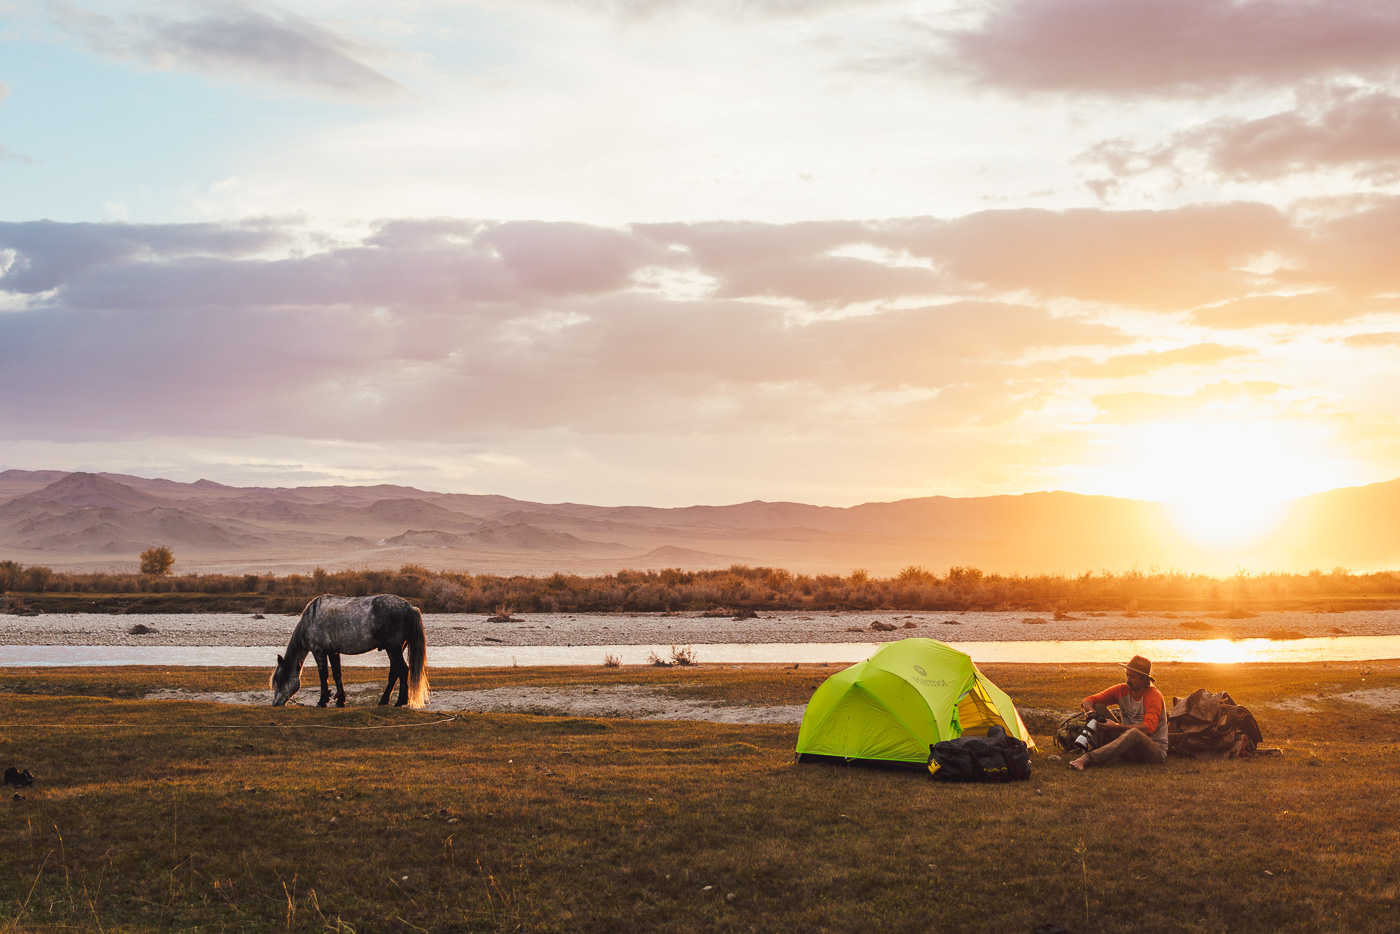 Solo horse trekking trip through Mongolia, Stefan Haworth looking through images at the campsite at sunset